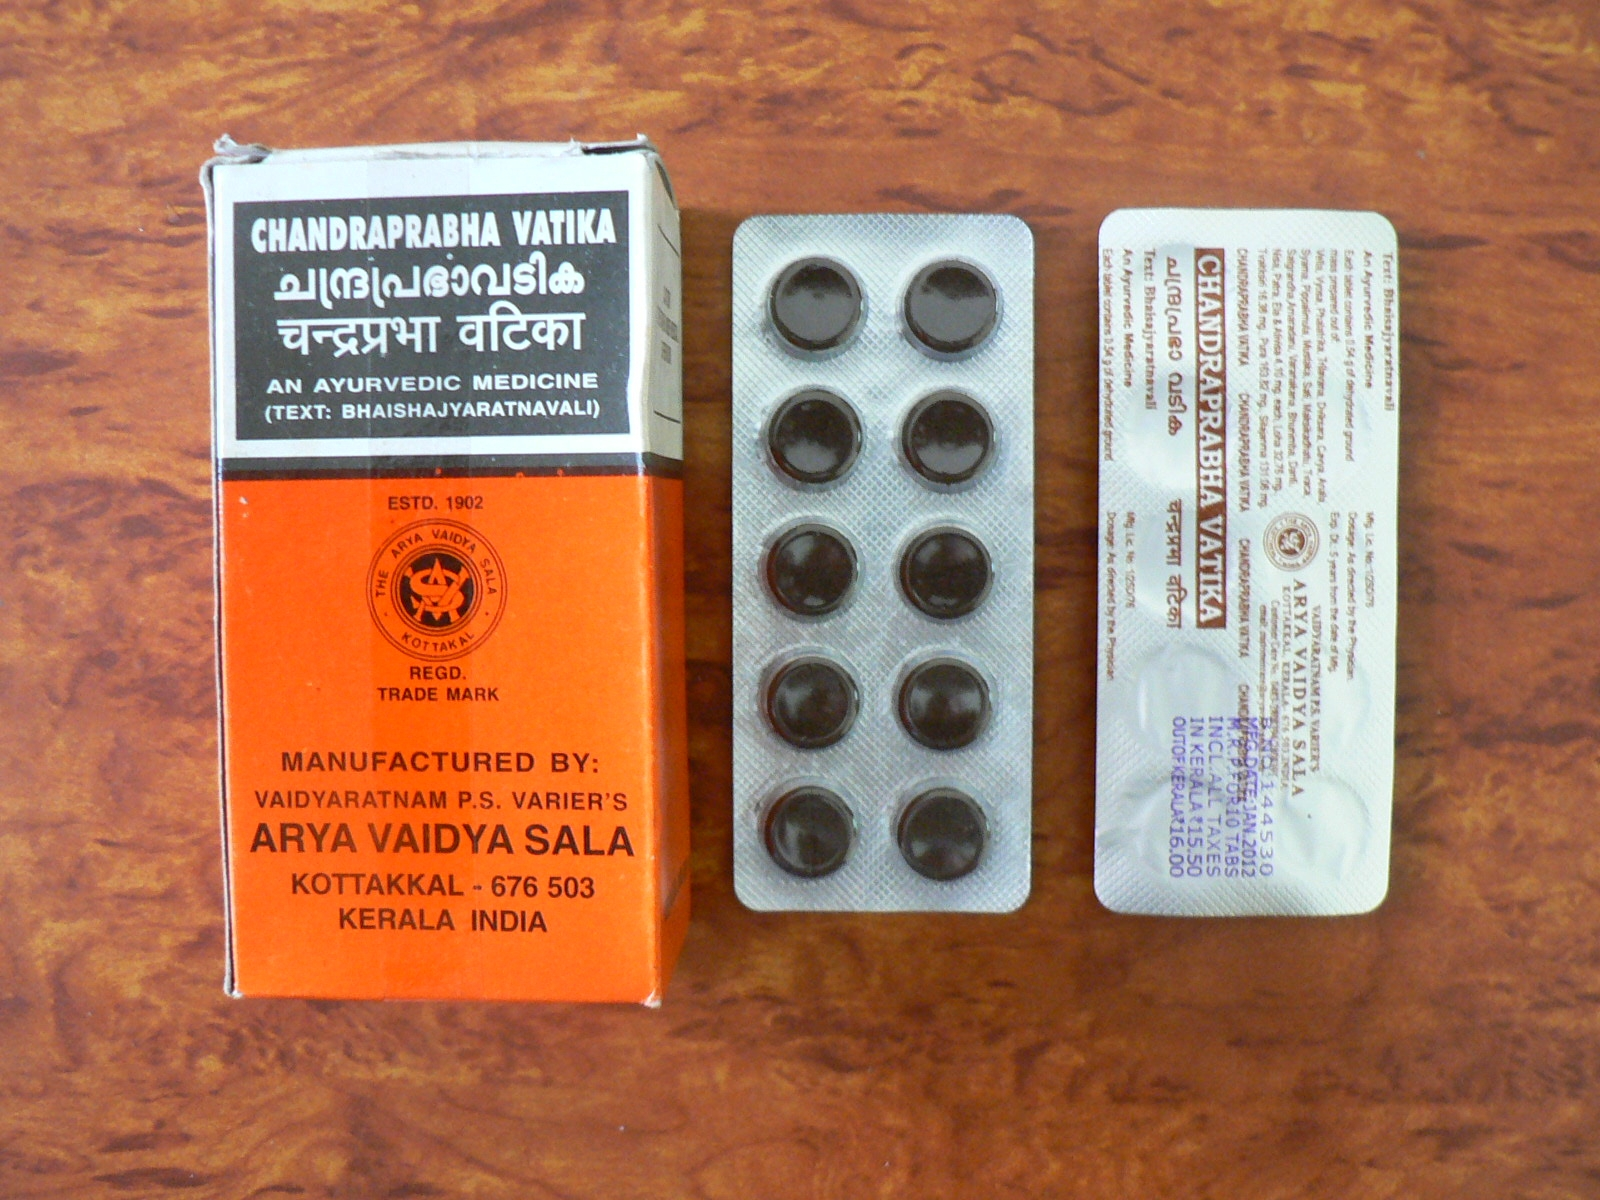 <b>CHANDRAPRABHA VATIKA</B><BR>AVS - 1 blister of 10 tablets